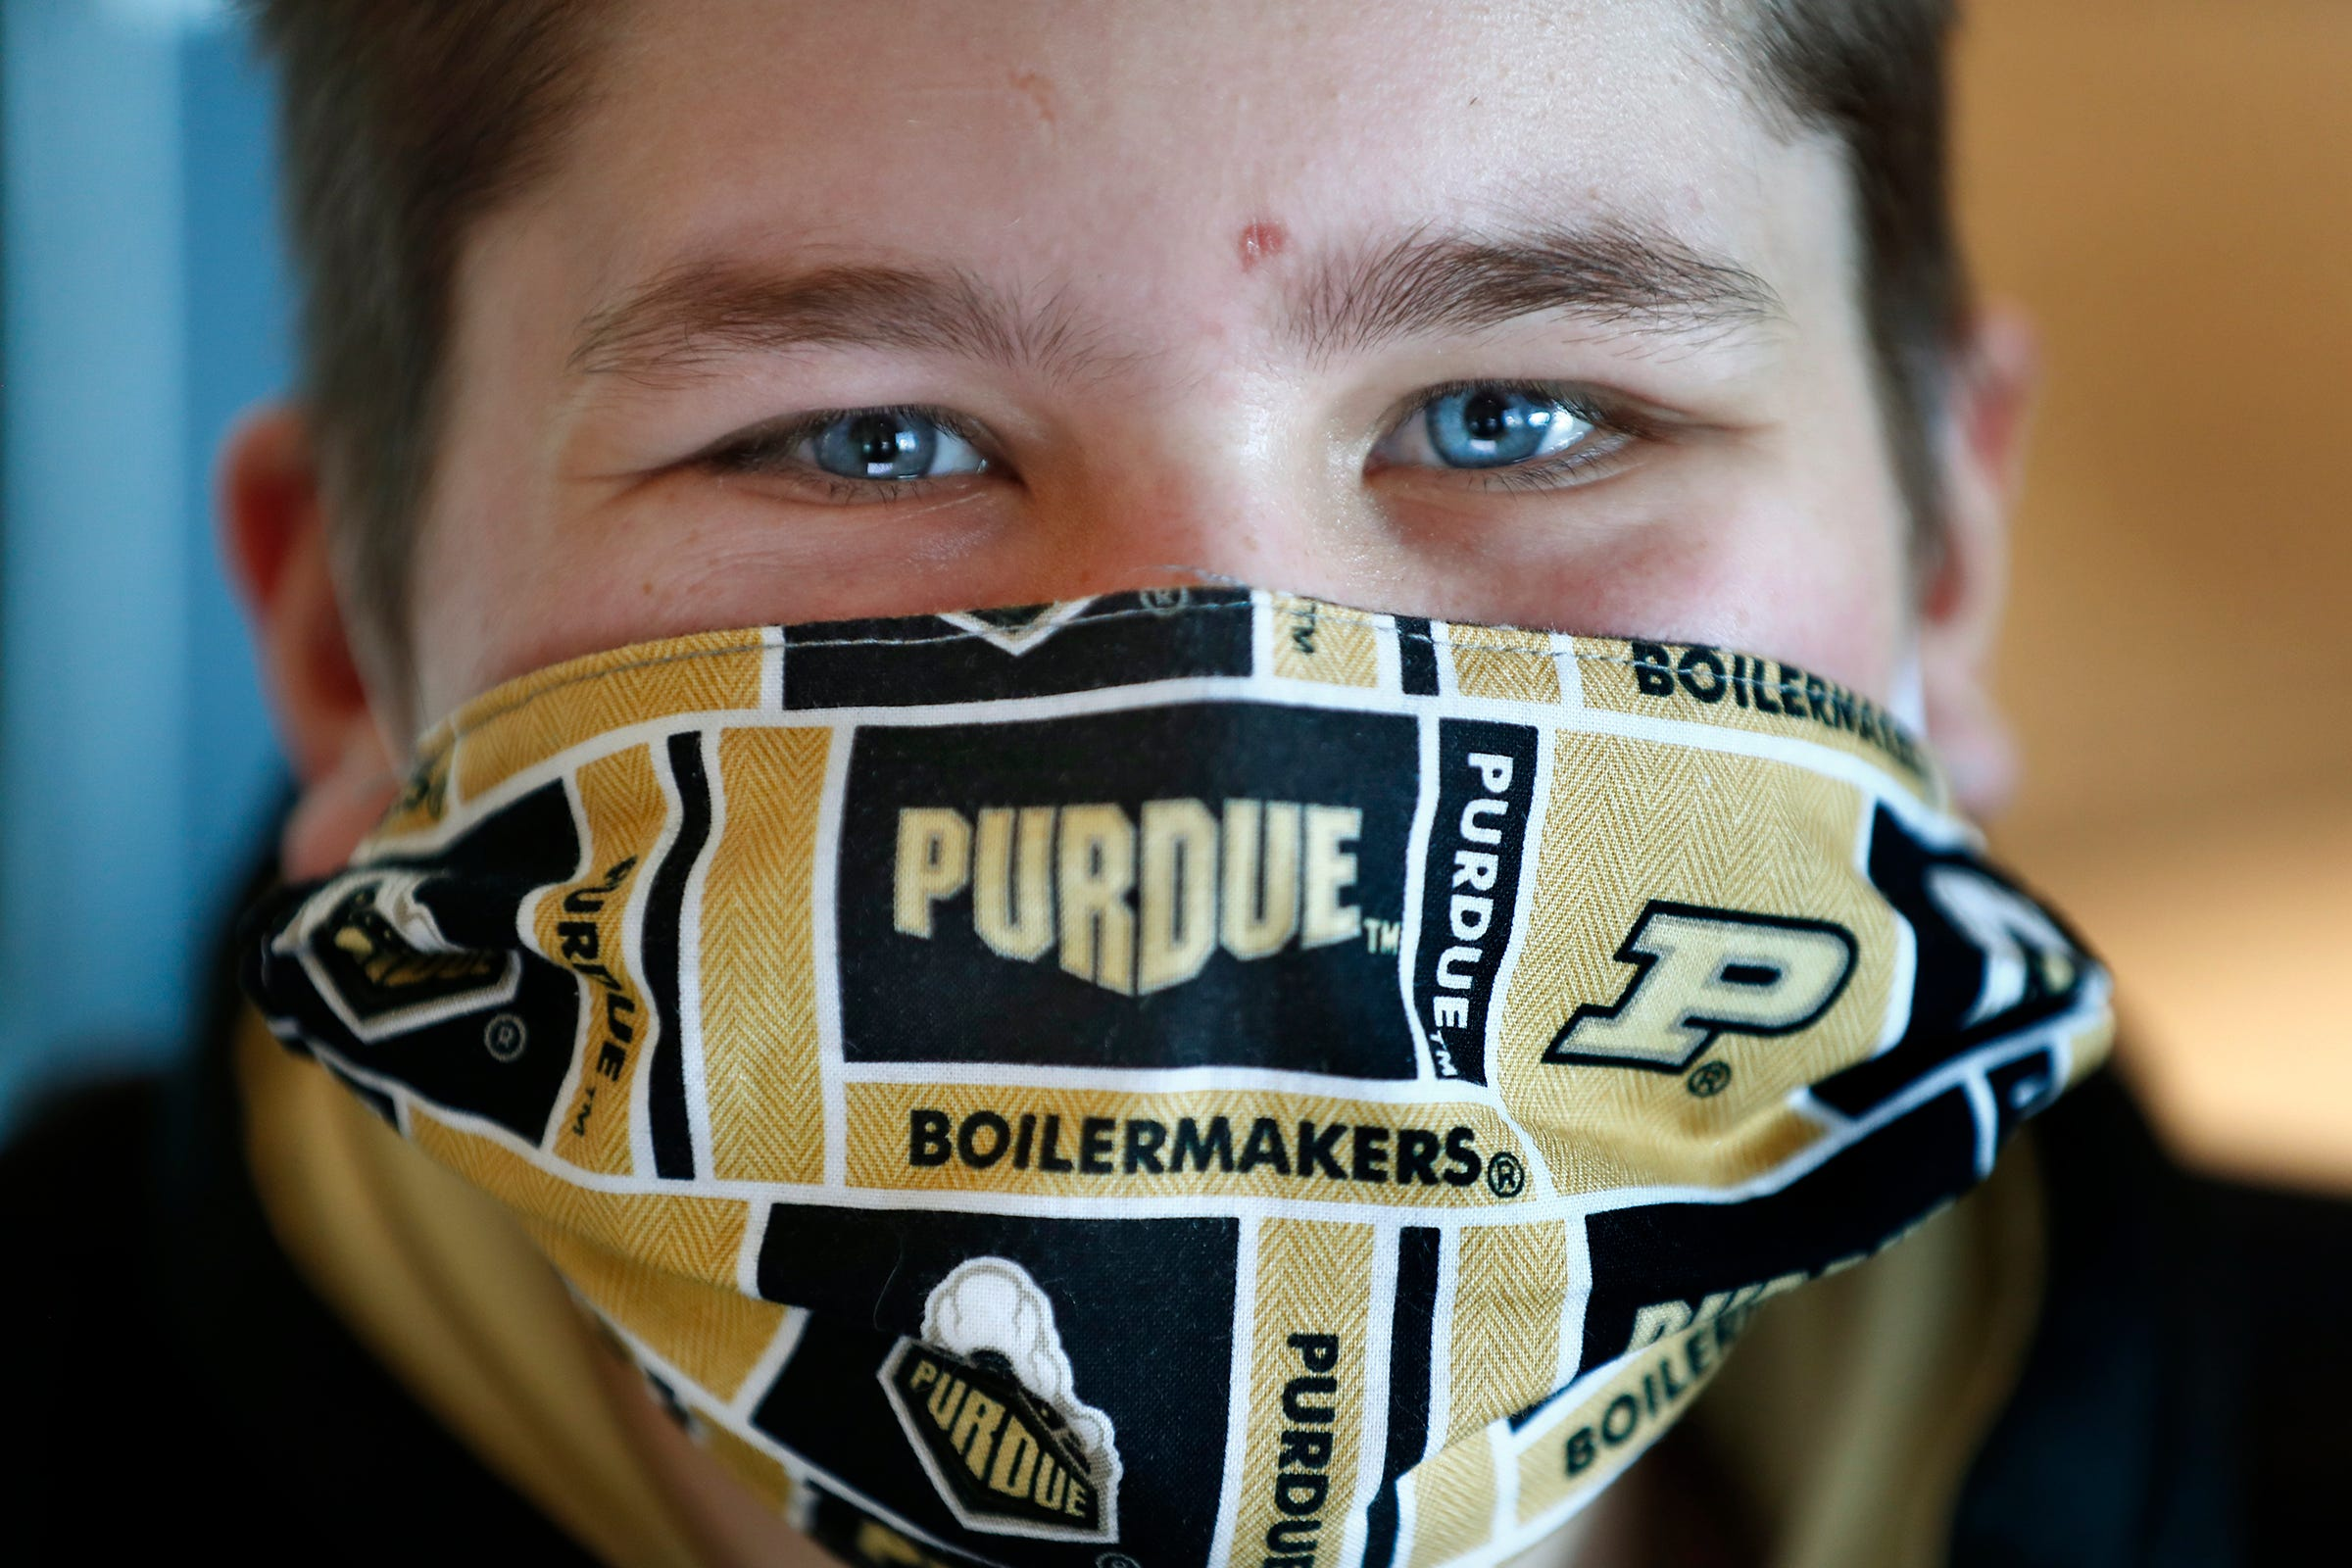 First Purdue Polytechnic HS graduates accepted to Purdue University